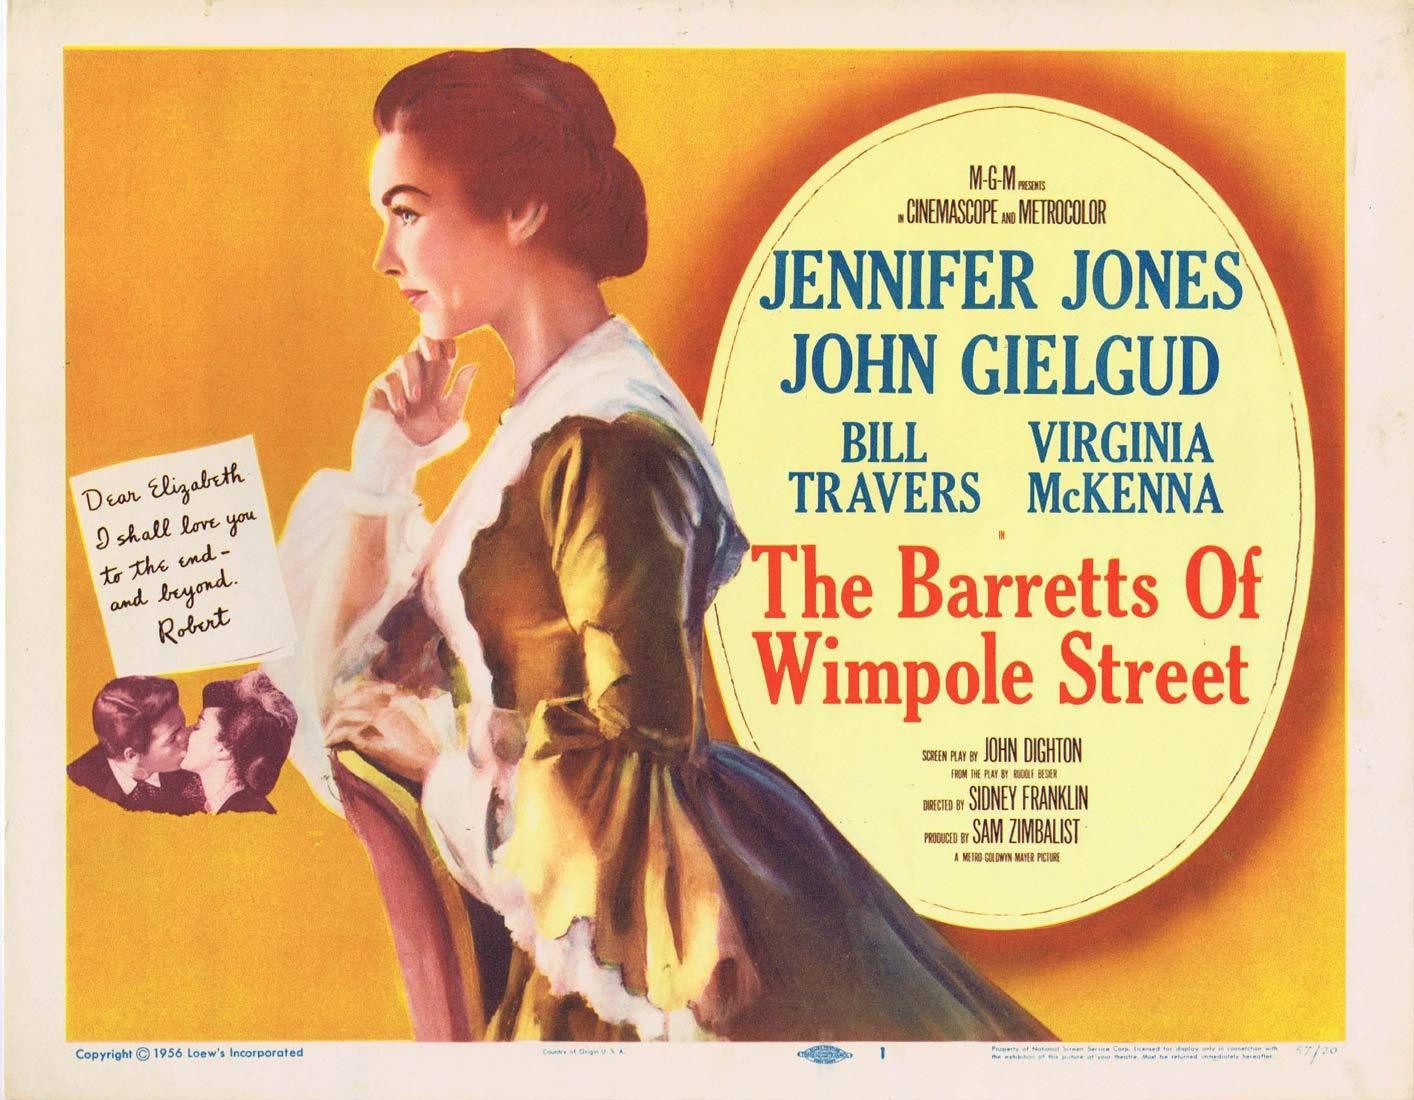 THE BARRETTS OF WIMPOLE STREET Original Title Lobby Card John Gielgud Jennifer Jones Bill Travers